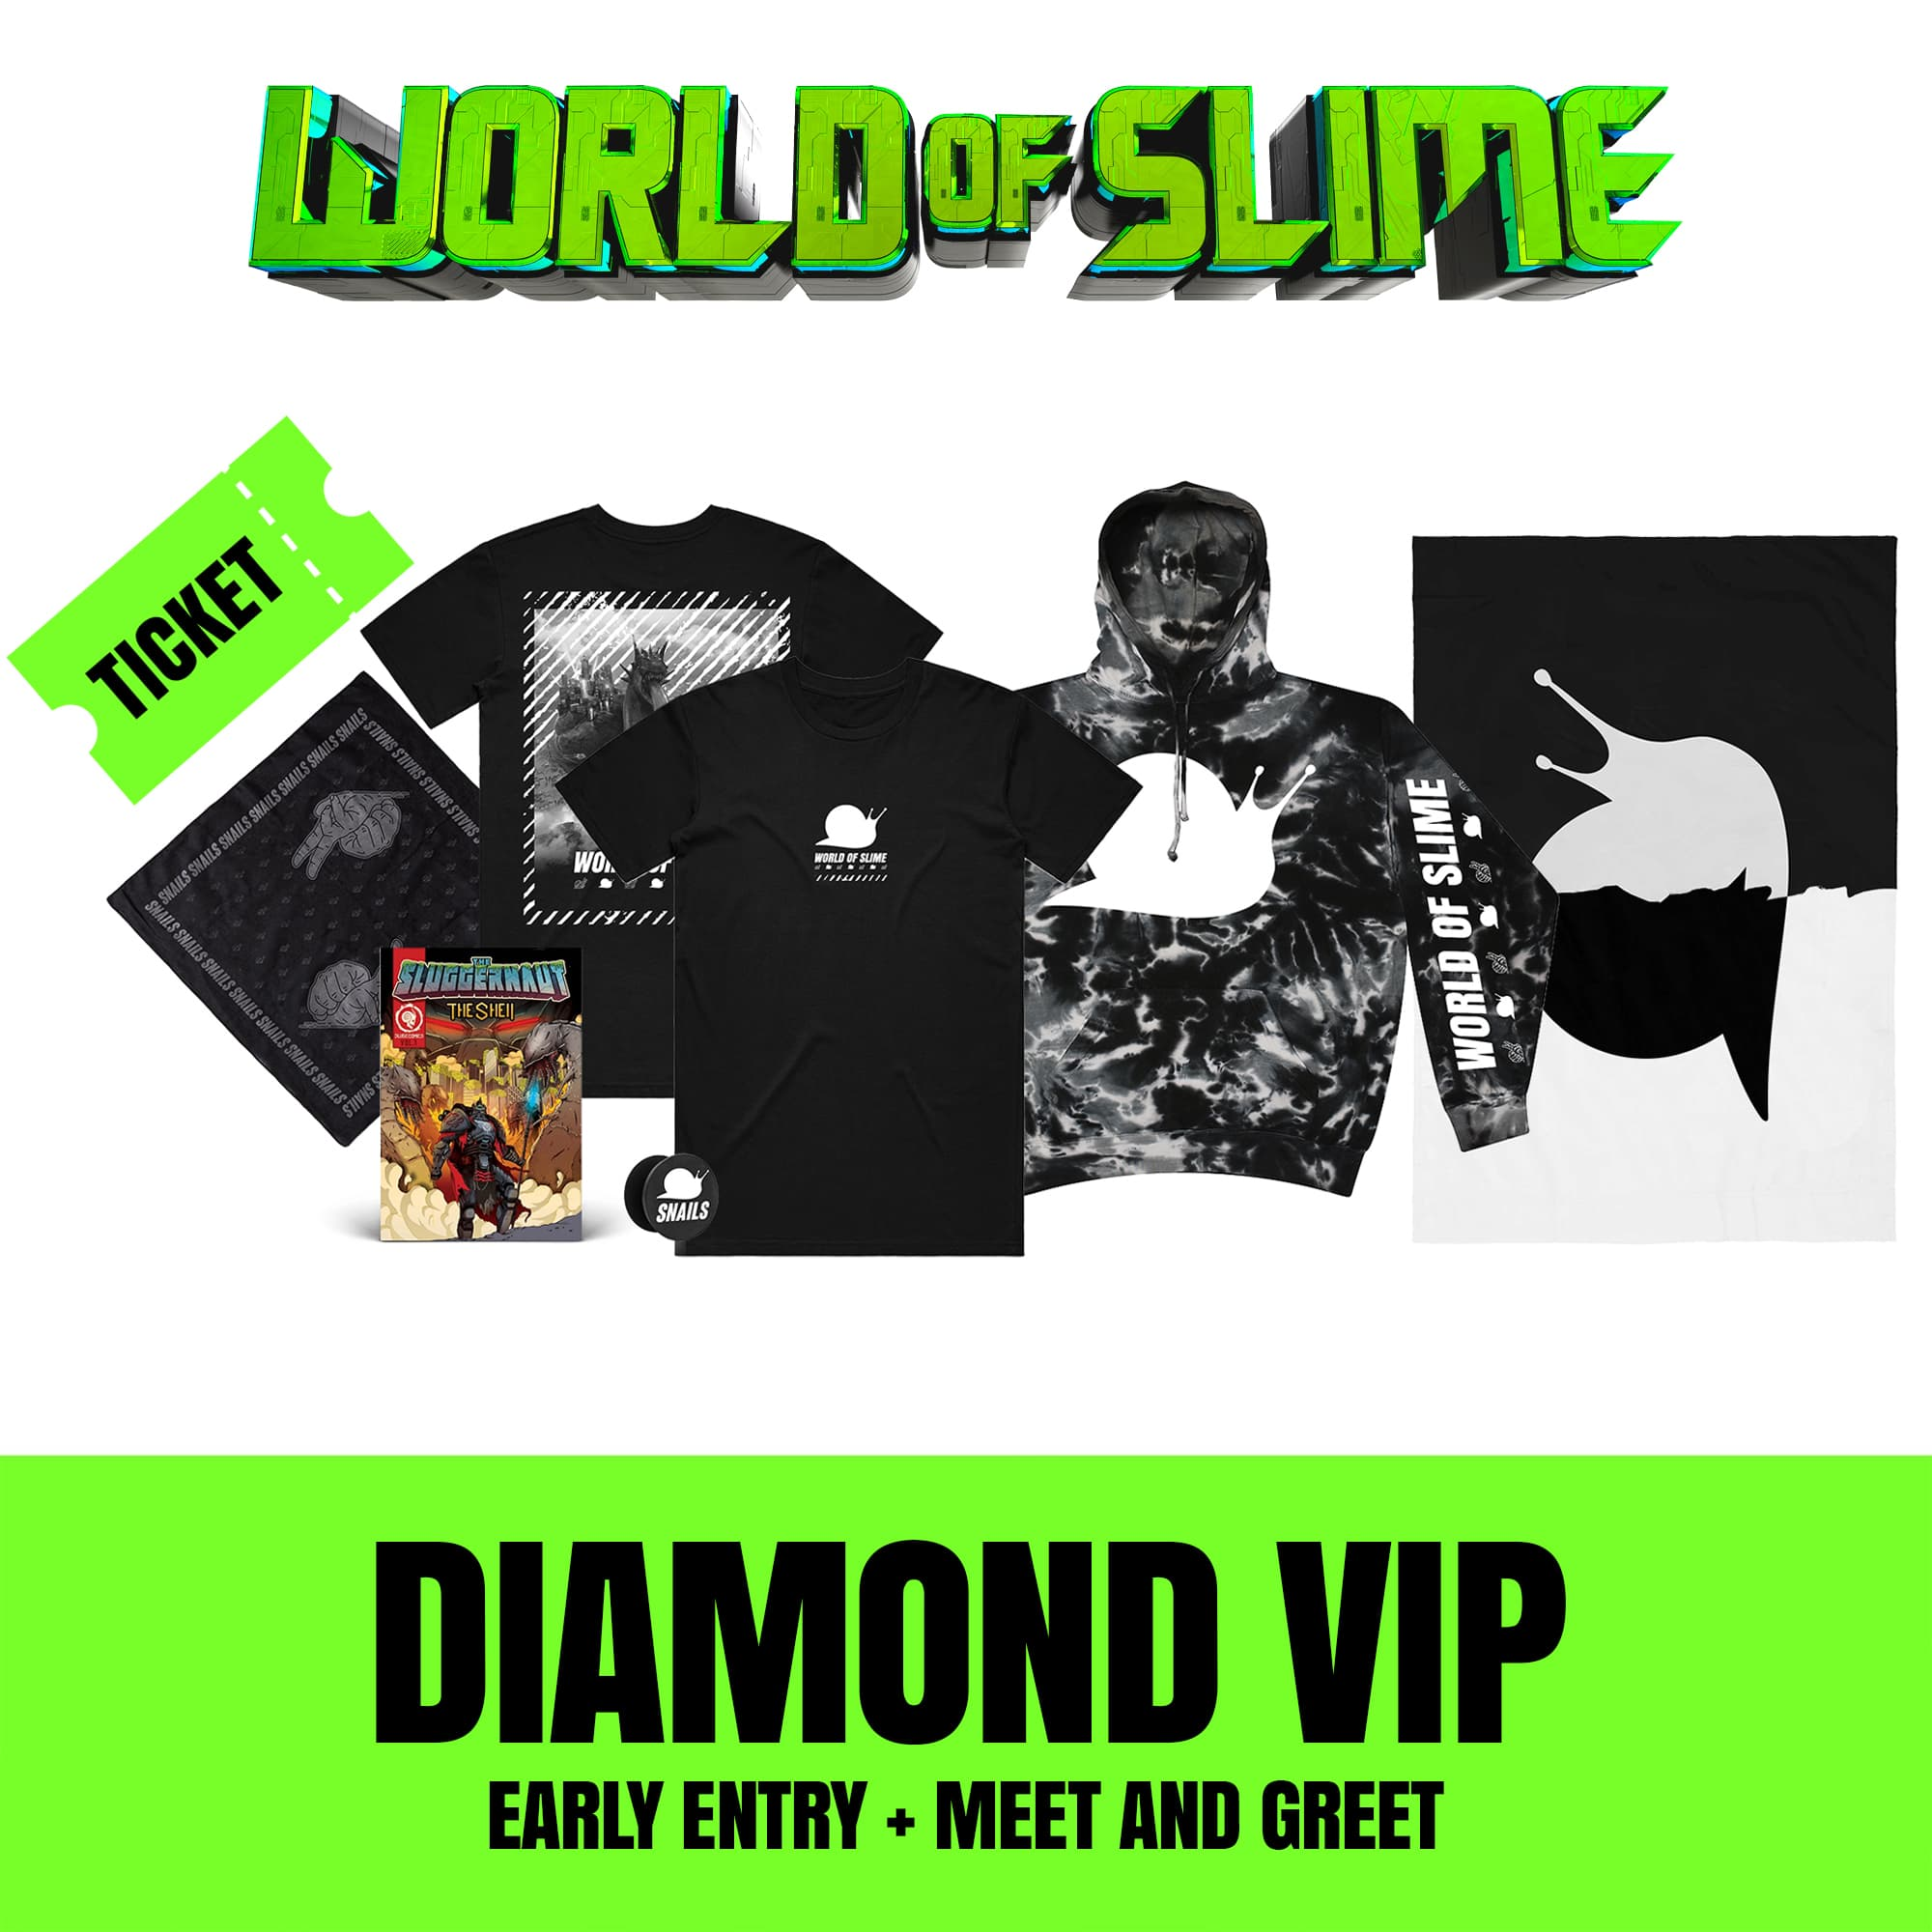 World Of Slime Tour - Boise, ID - 11/13